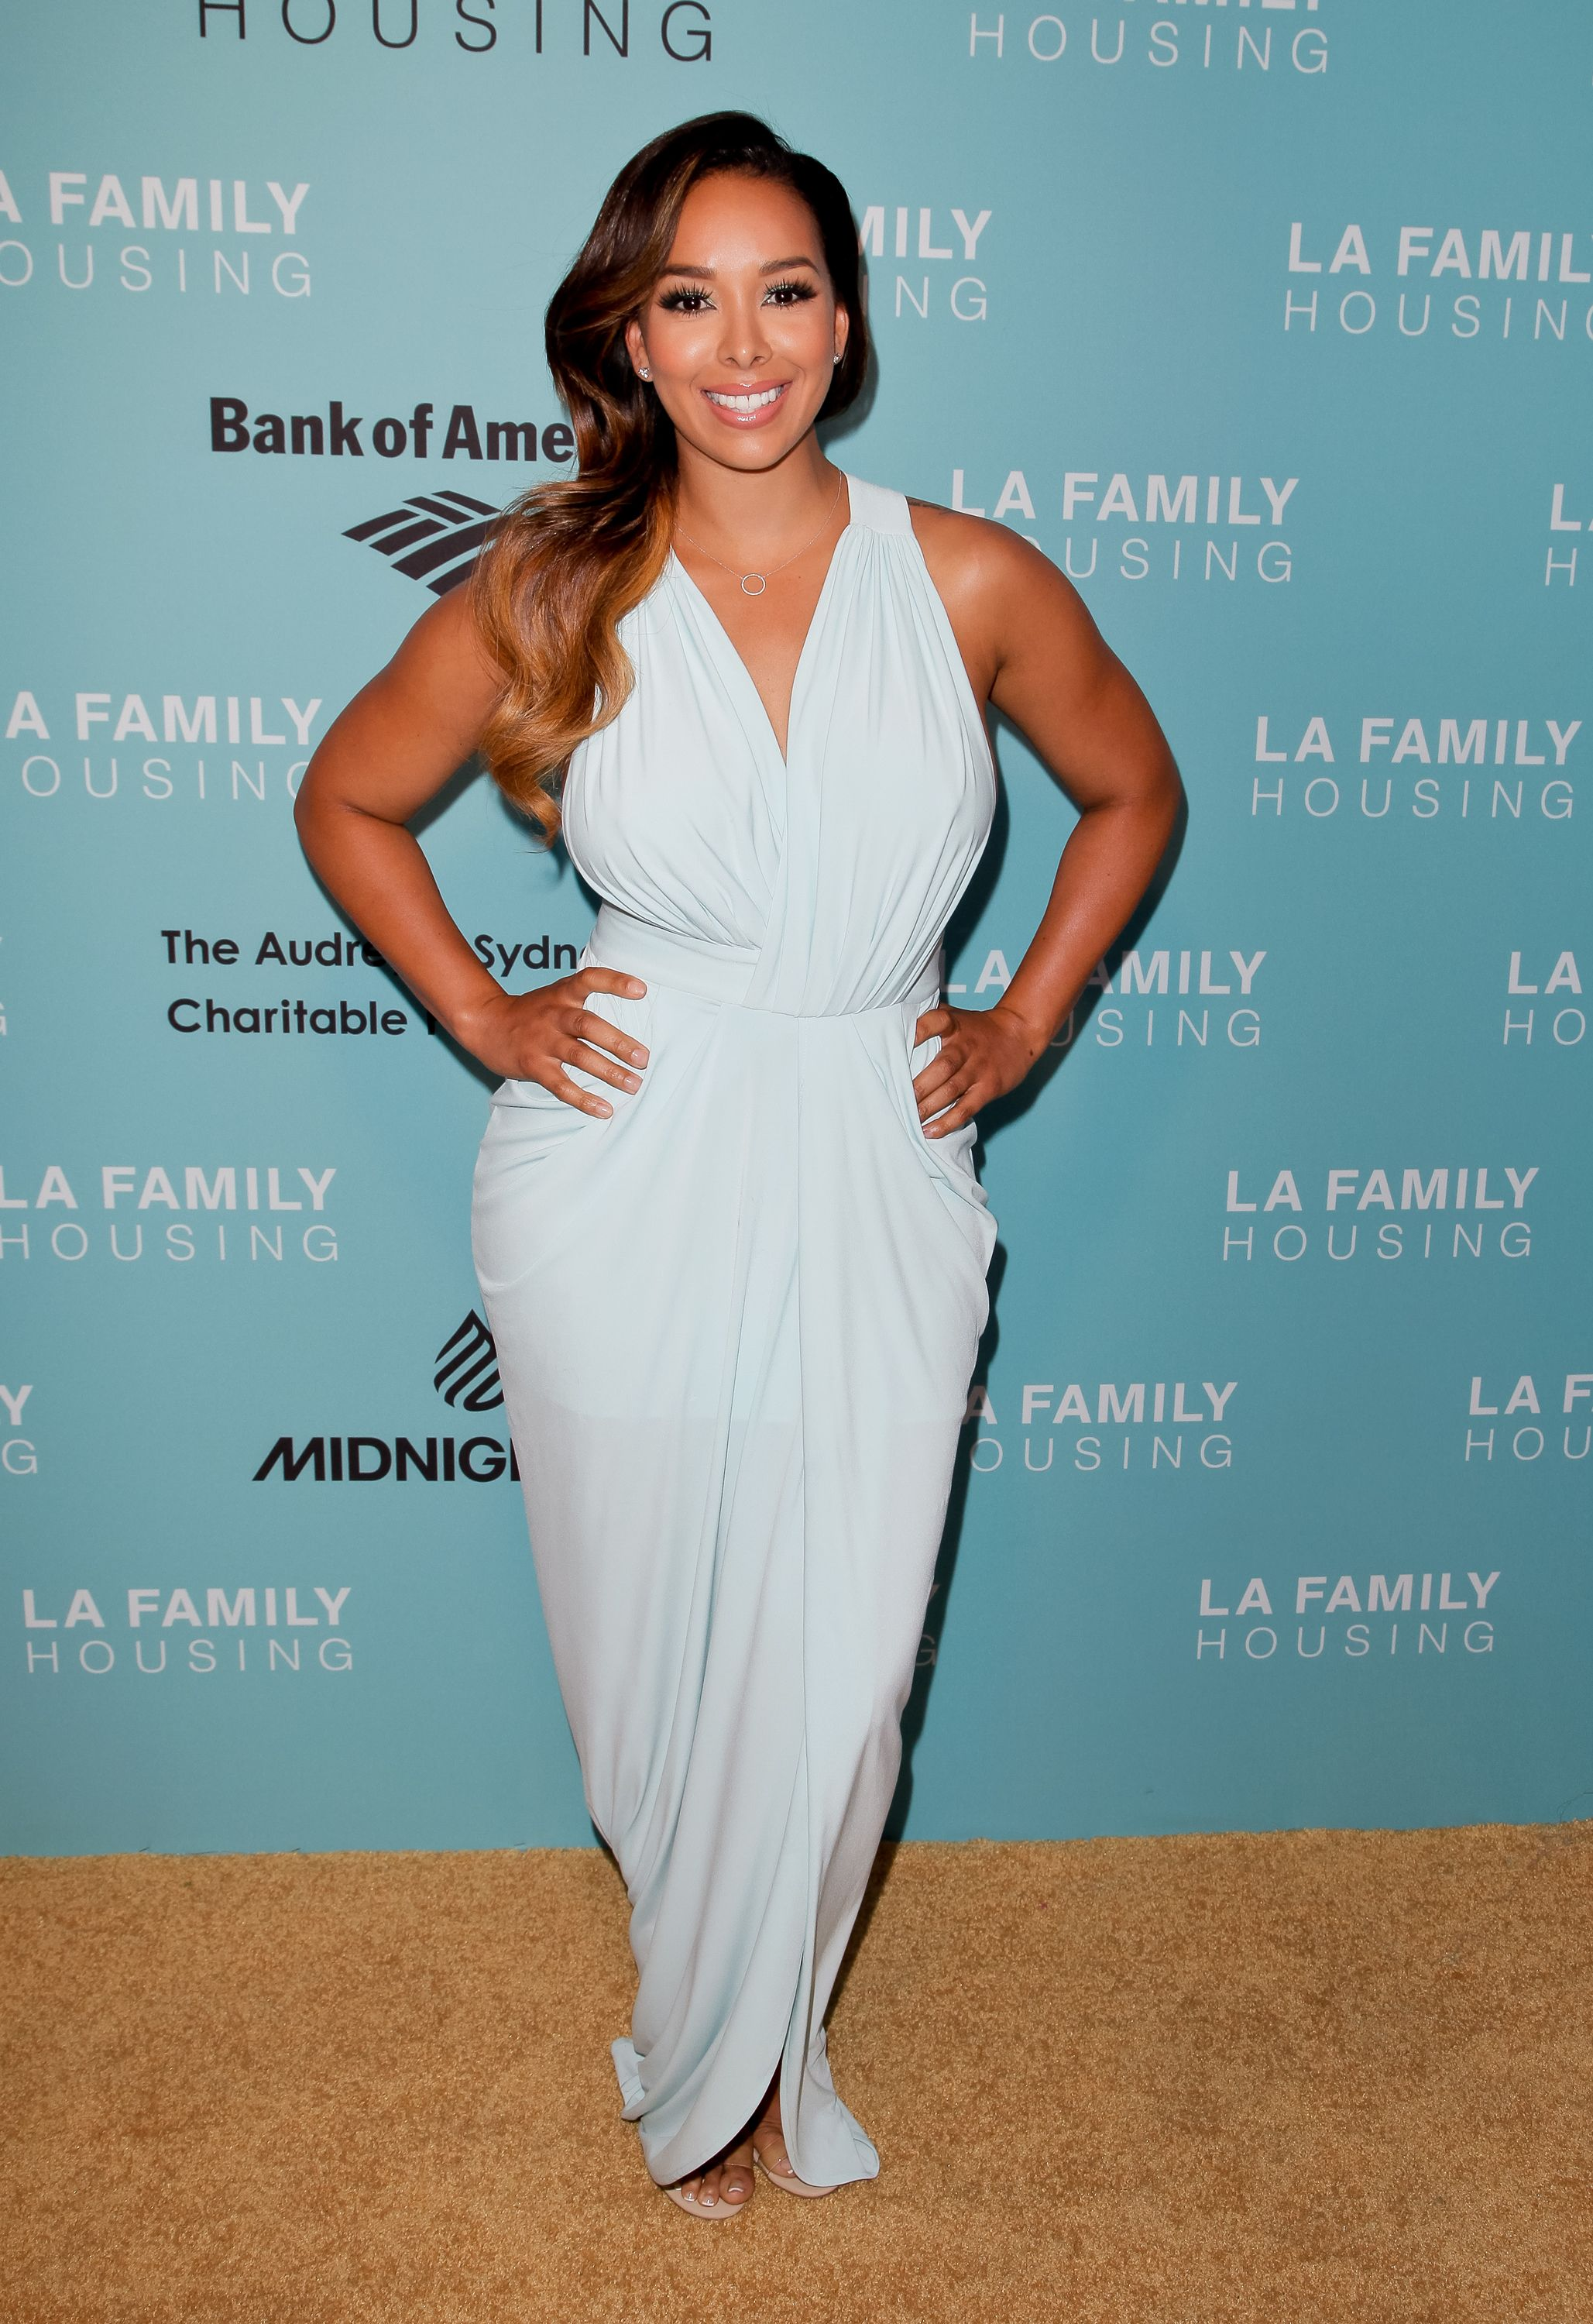 Gloria Govan at the LA Family Housing 2017 Awards at The Lot on April 27, 2017 in West Hollywood, California | Photo: Getty Images